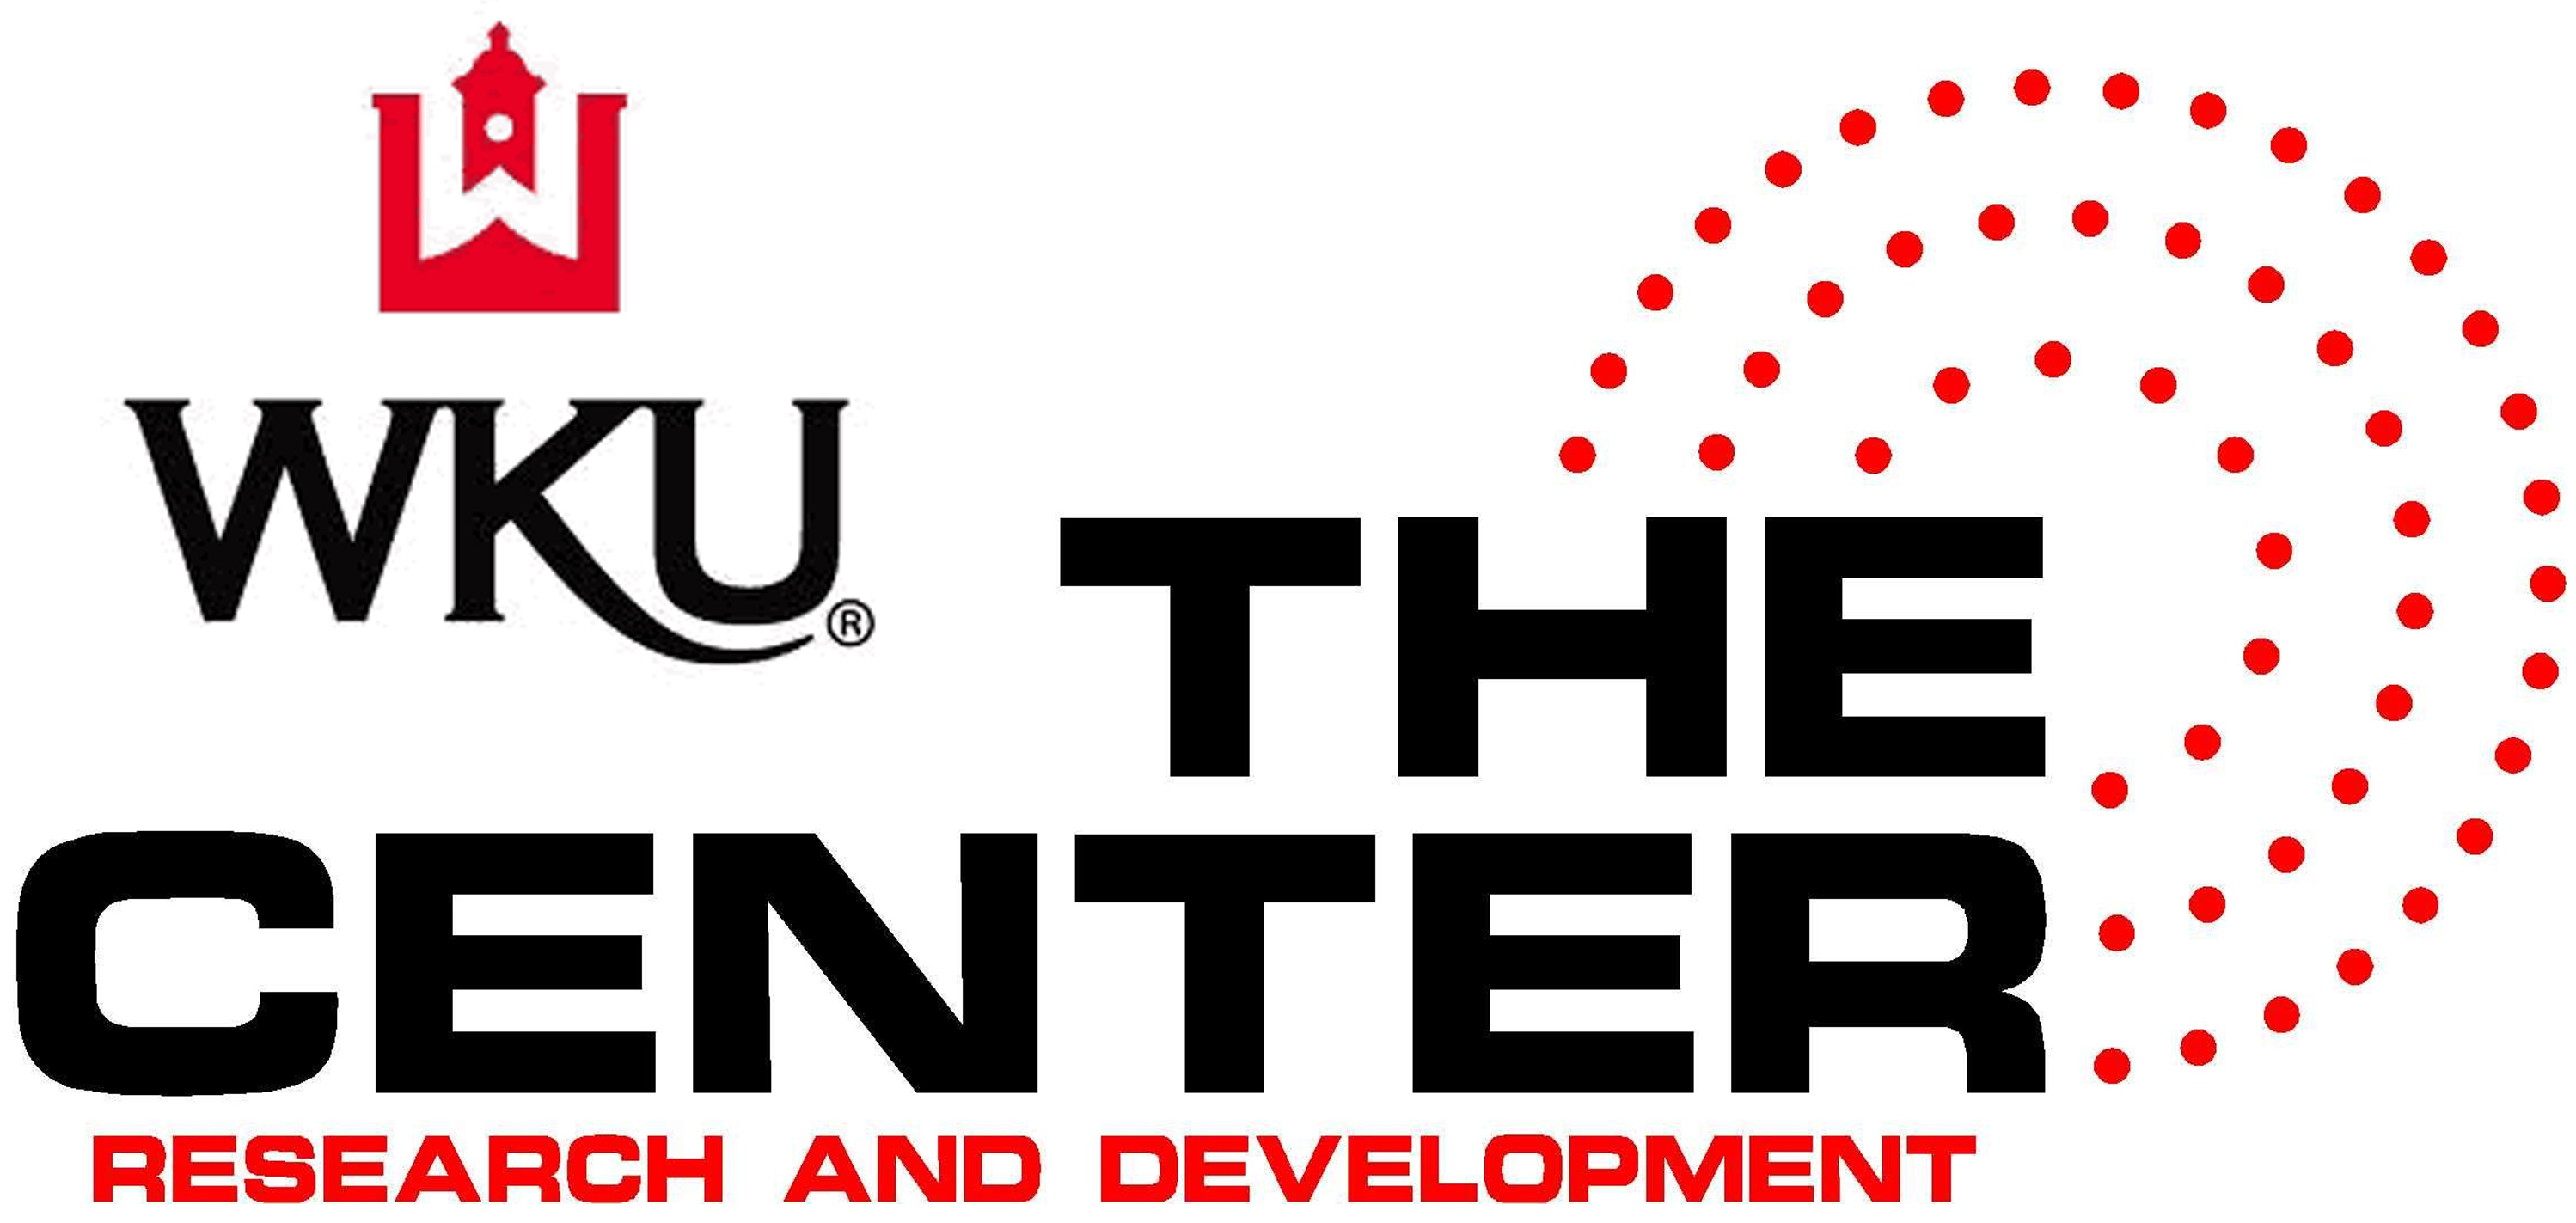 Center for Research and Development Logo